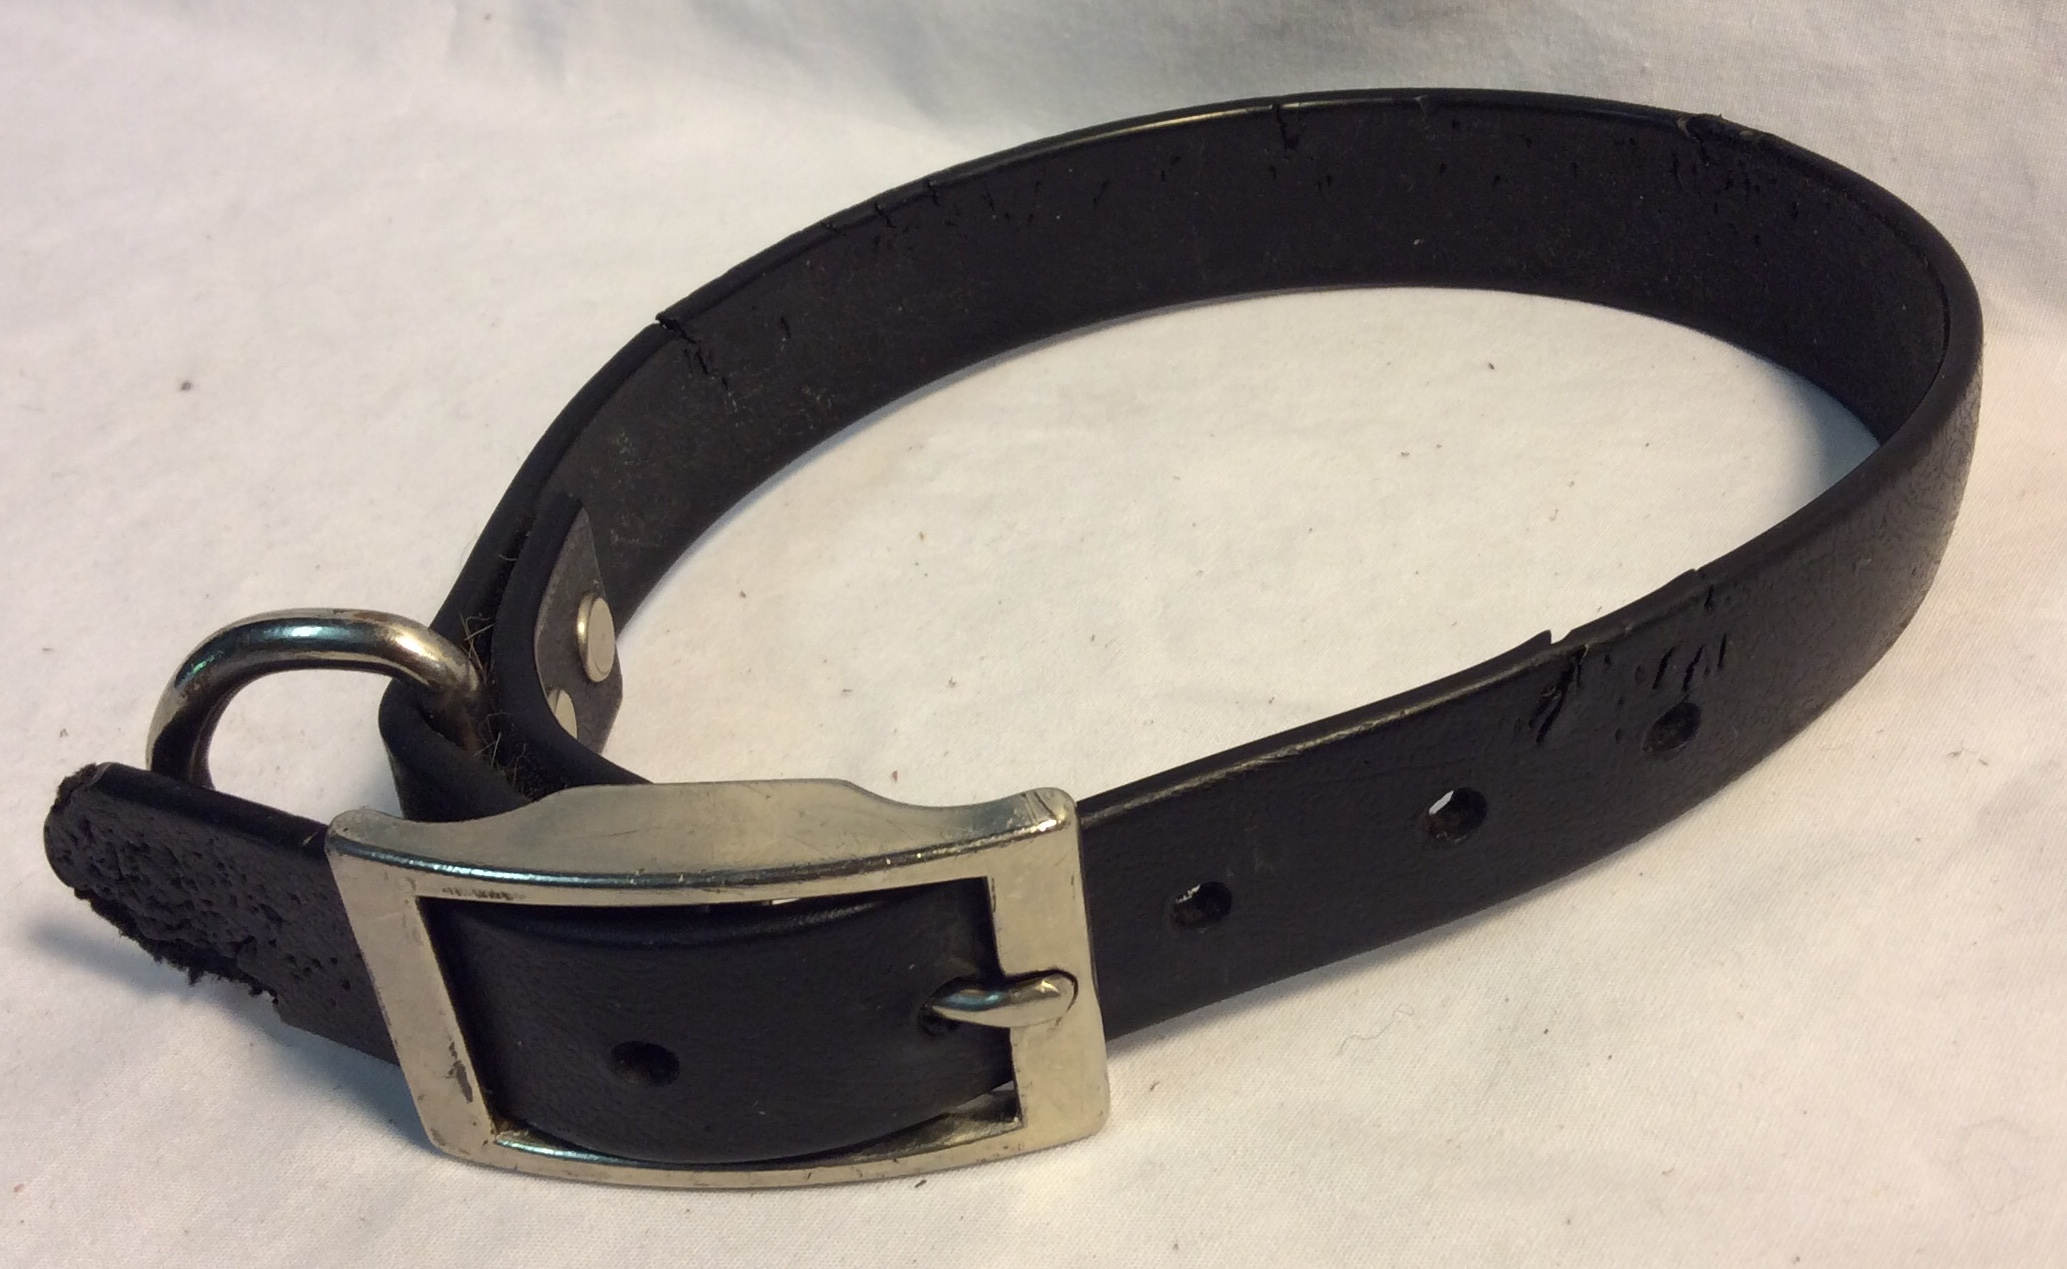 Aged black leather dog collar